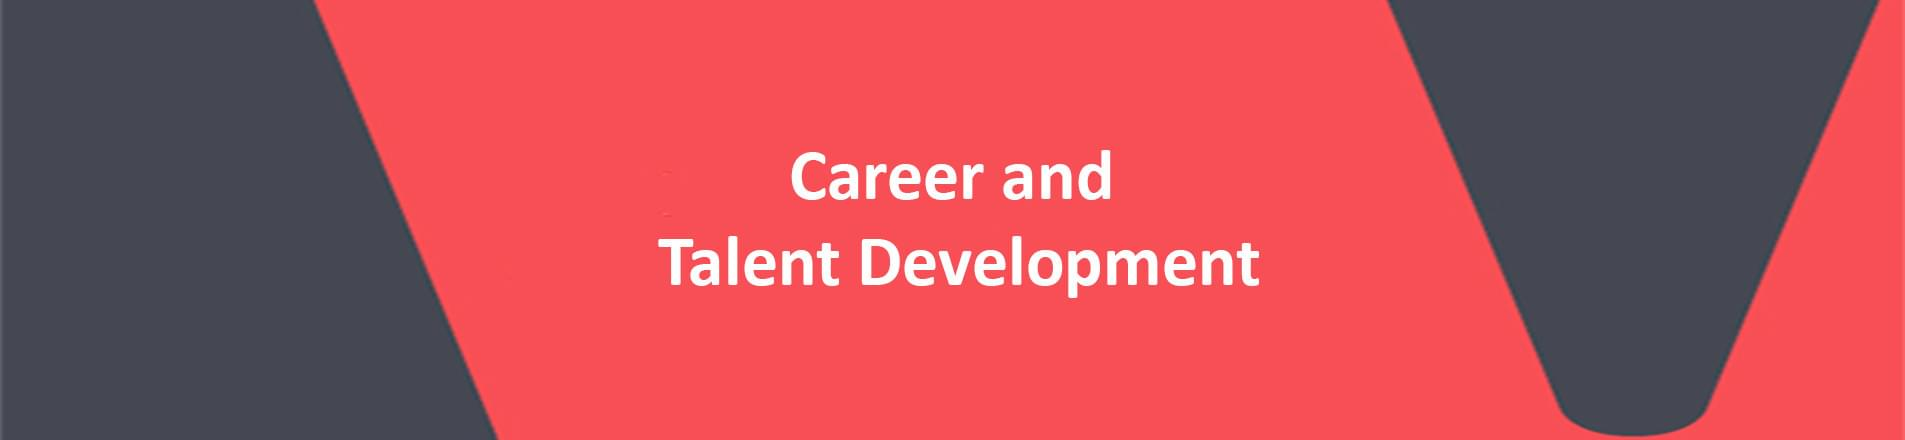 Red banner with white text spelling Career and  Talent Development